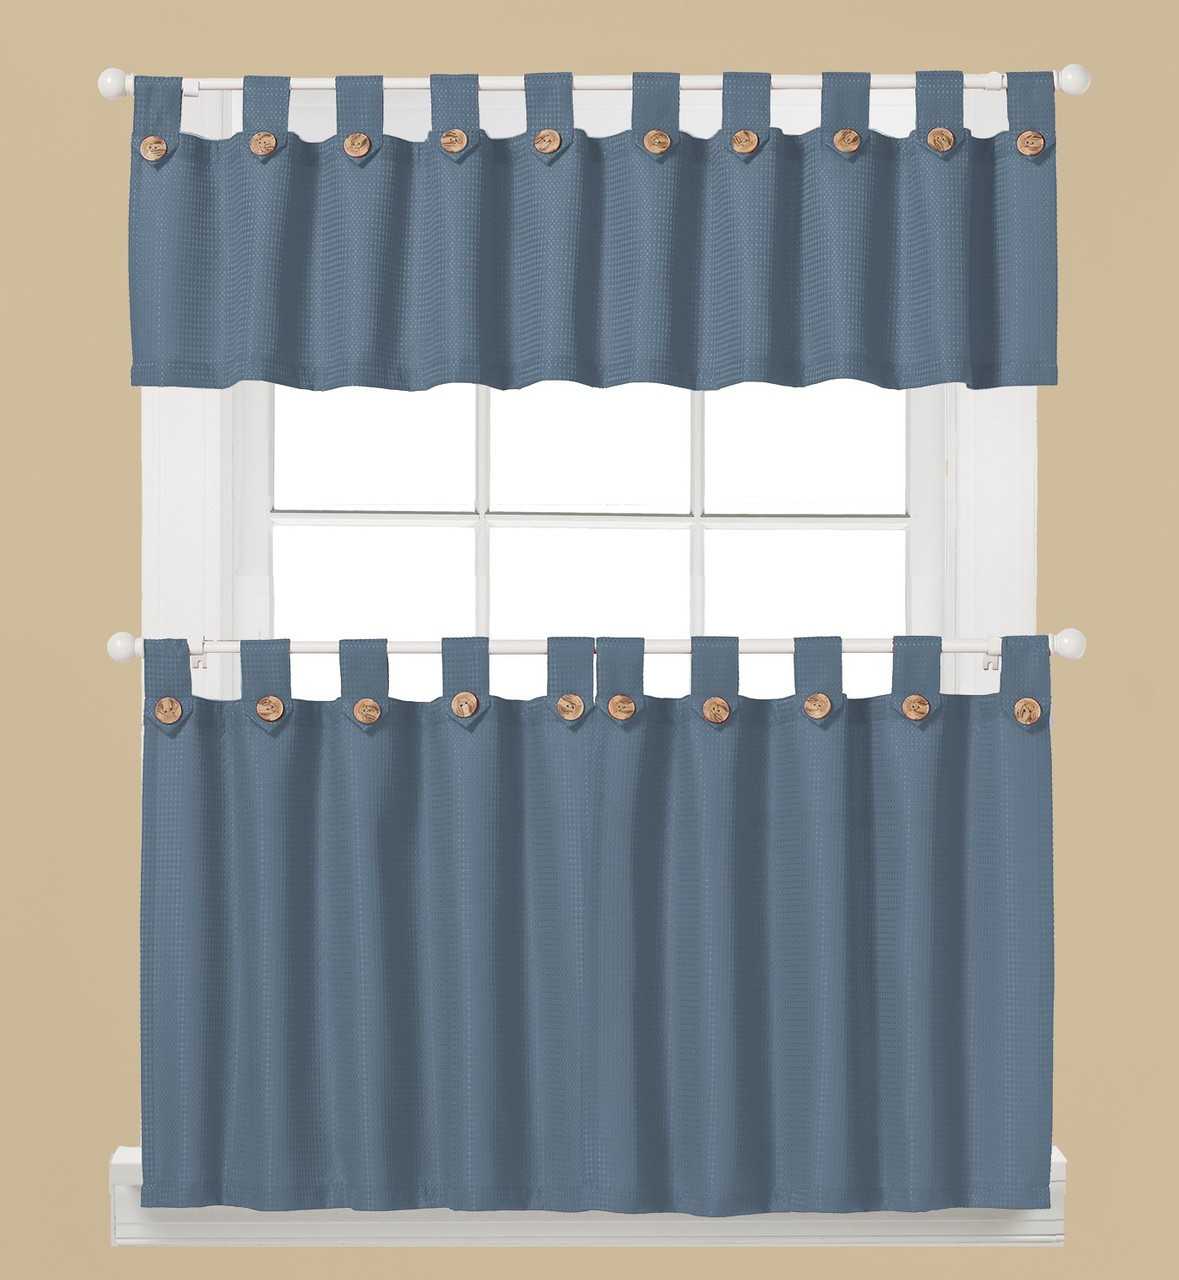 New Kitchen Curtains For Less: Westlake Kitchen Curtain